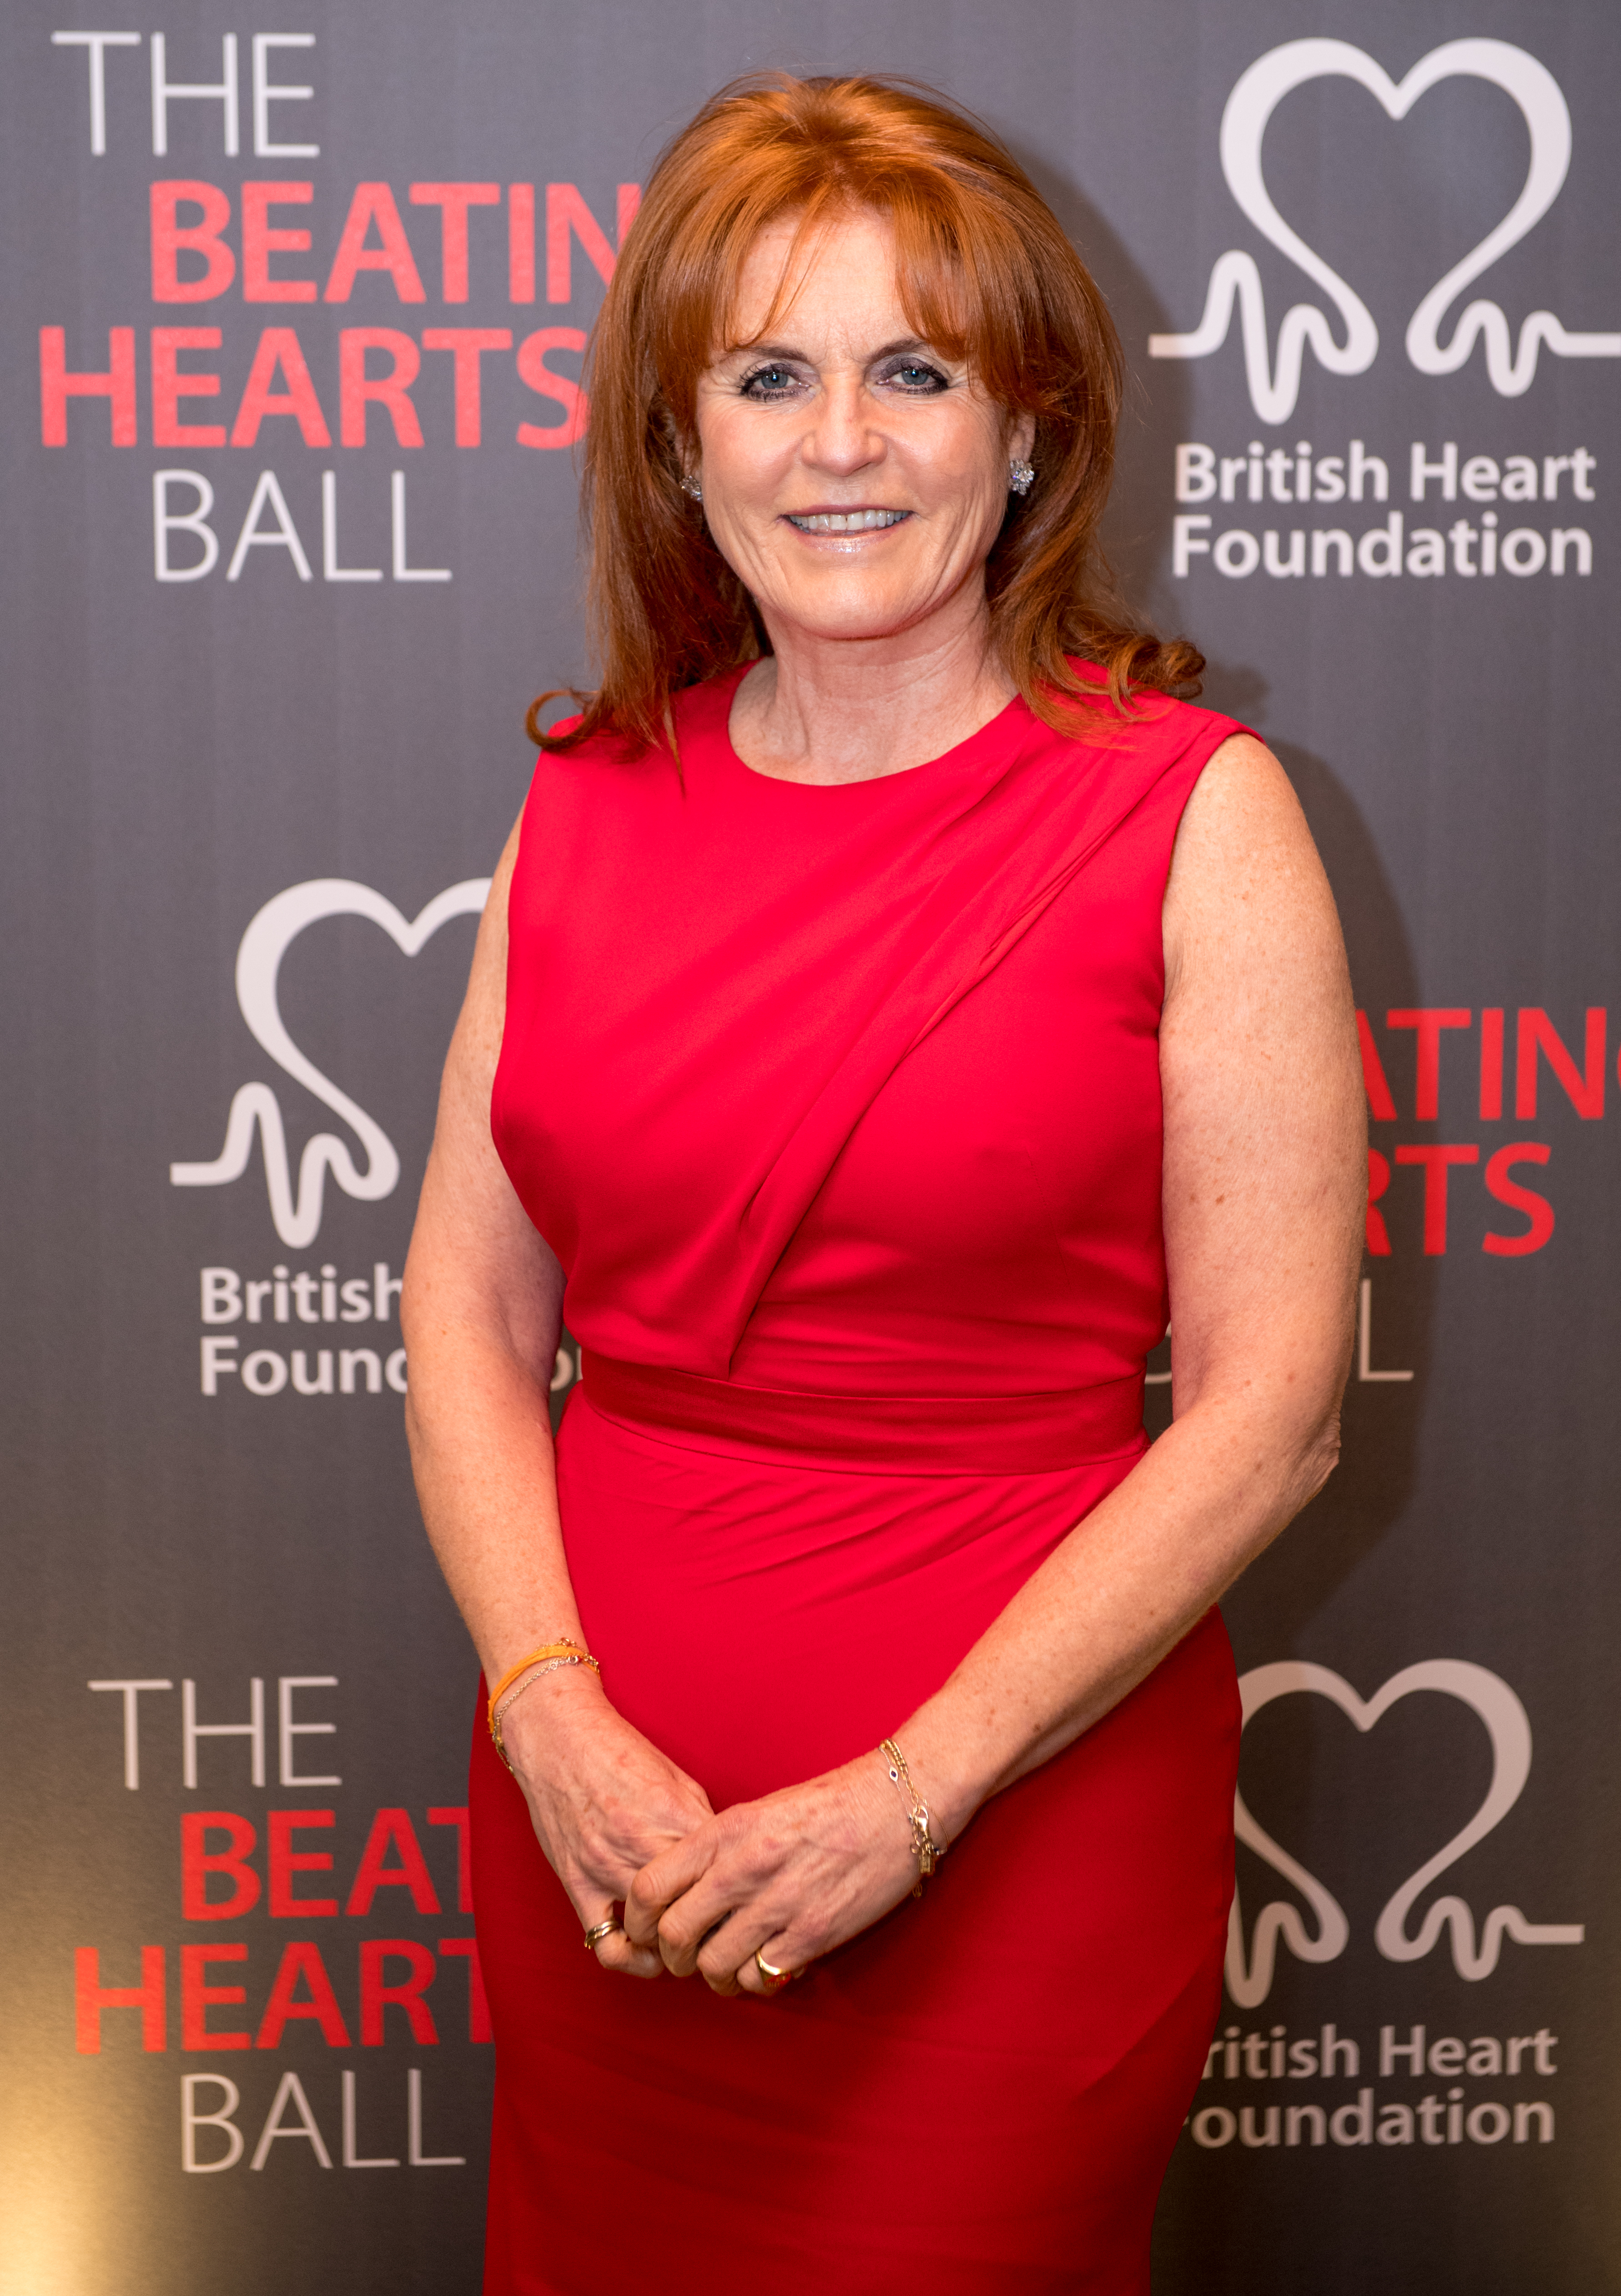 Sarah Ferguson, Duchess of York, attends the British Heart Foundation's 'The Beating Hearts Ball' at The Guildhall on February 20, 2018 in London, England. (Photo by Chris J Ratcliffe/Getty Images)